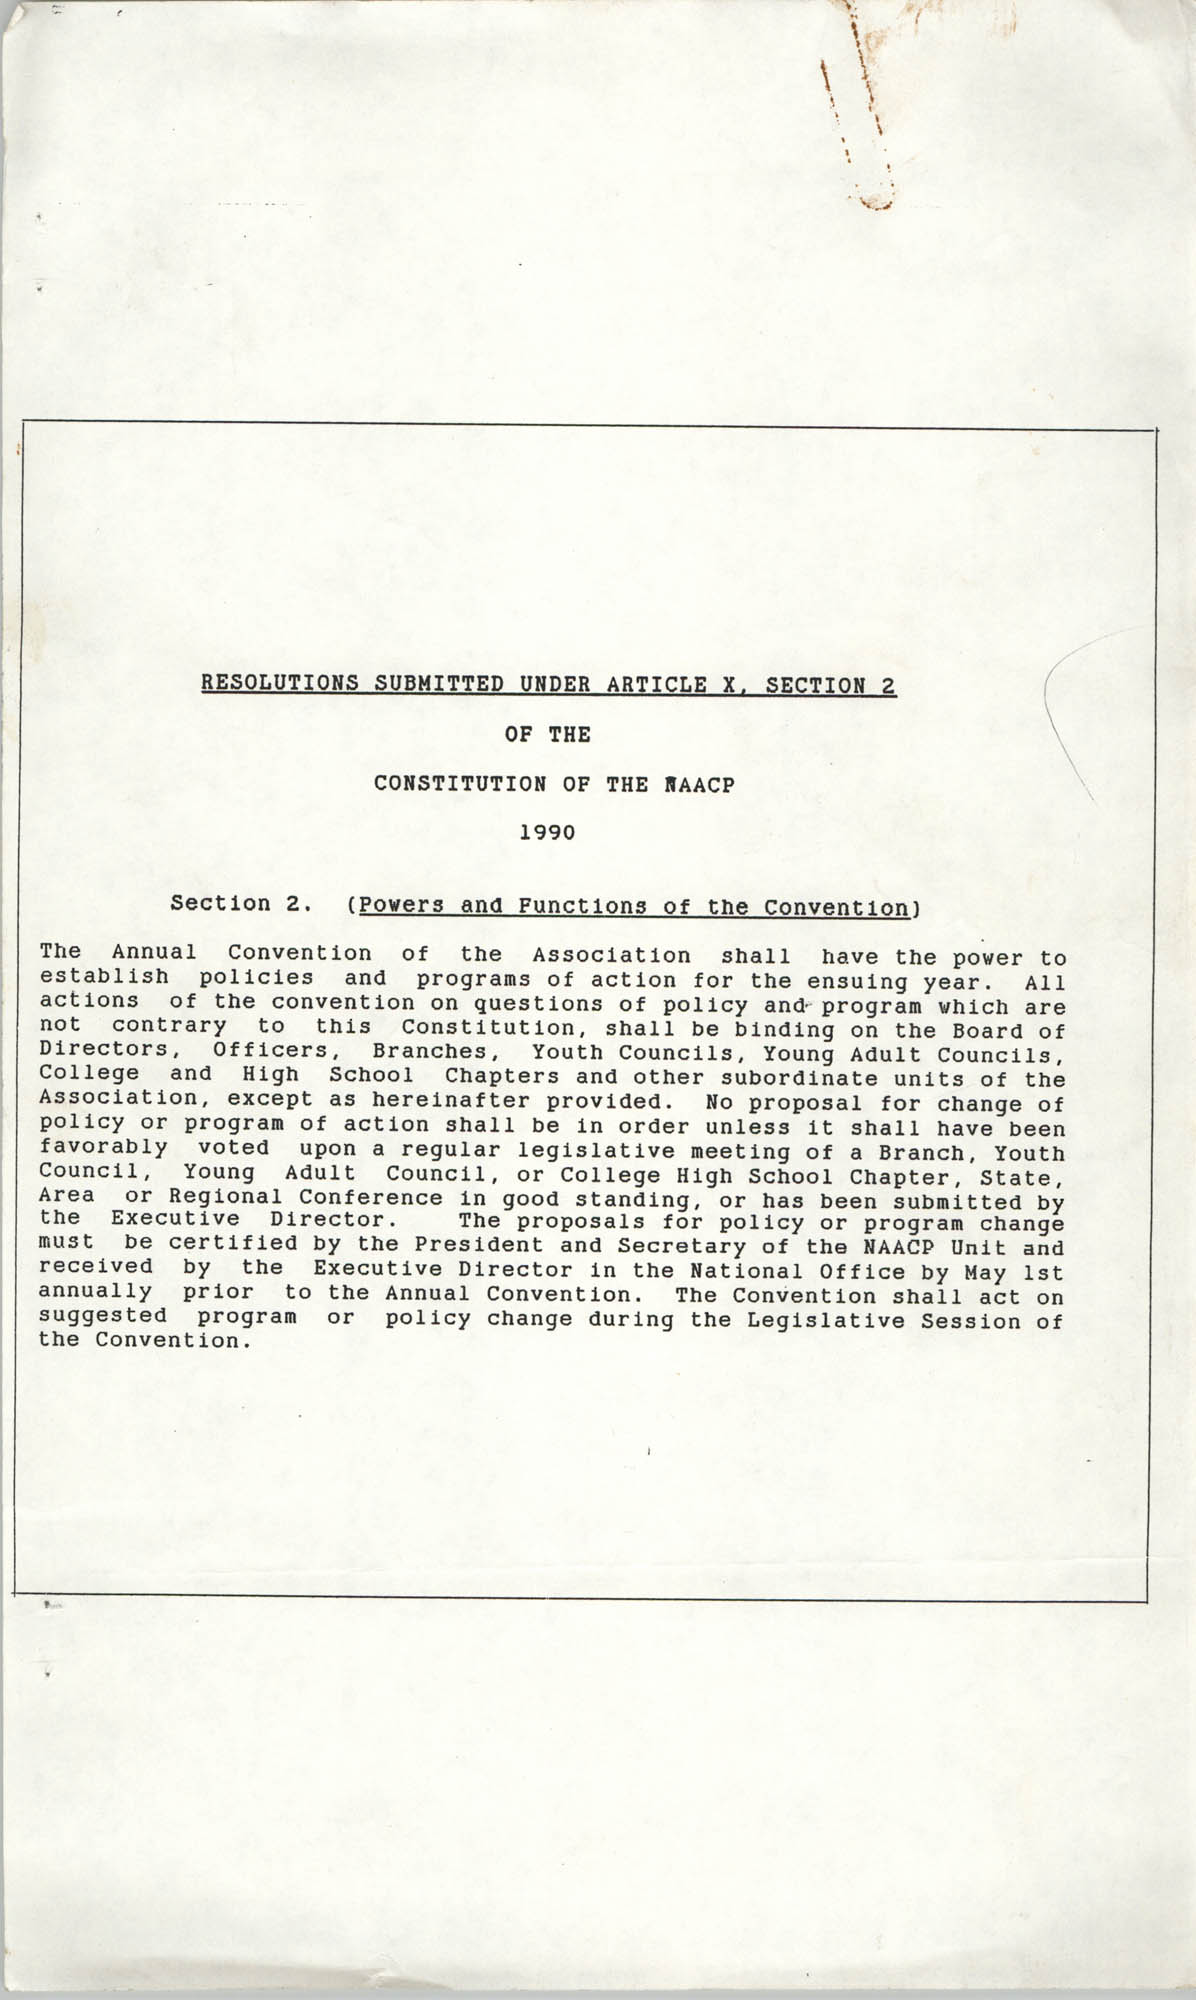 Resolutions Submitted Under Article X, Section 2 of the Constitution of the NAACP, 1990, Cover